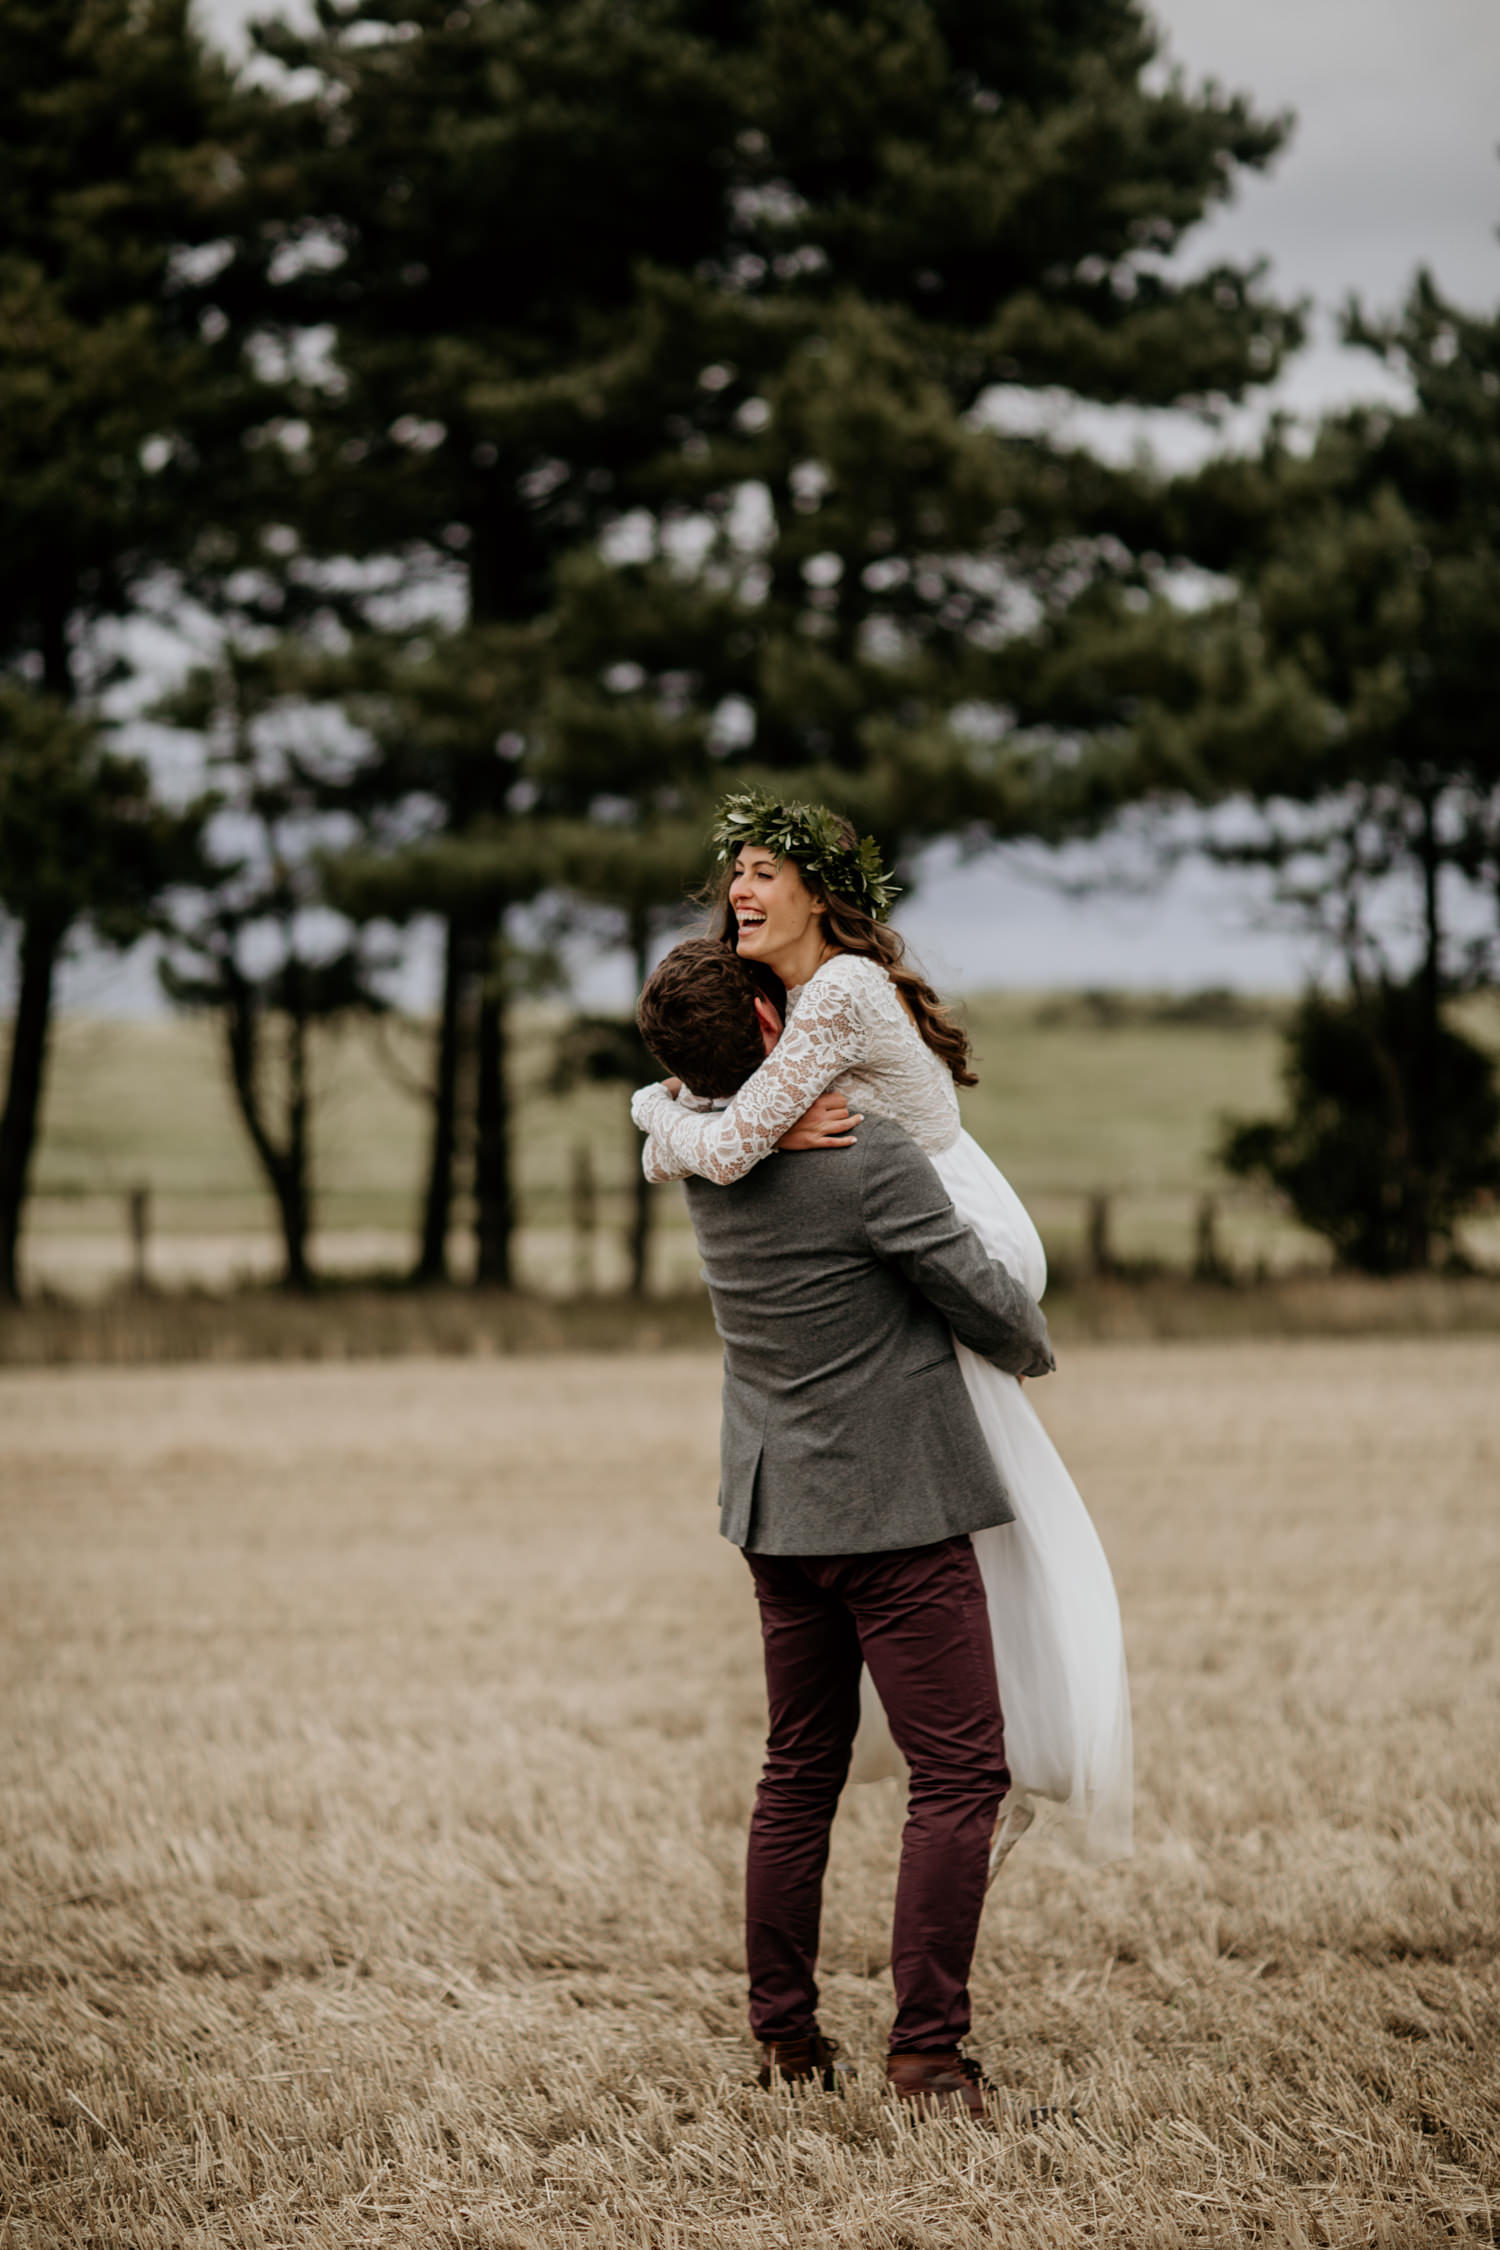 groom lifting bride into the air during the wedding portraits at Harvest Moon, Scotland